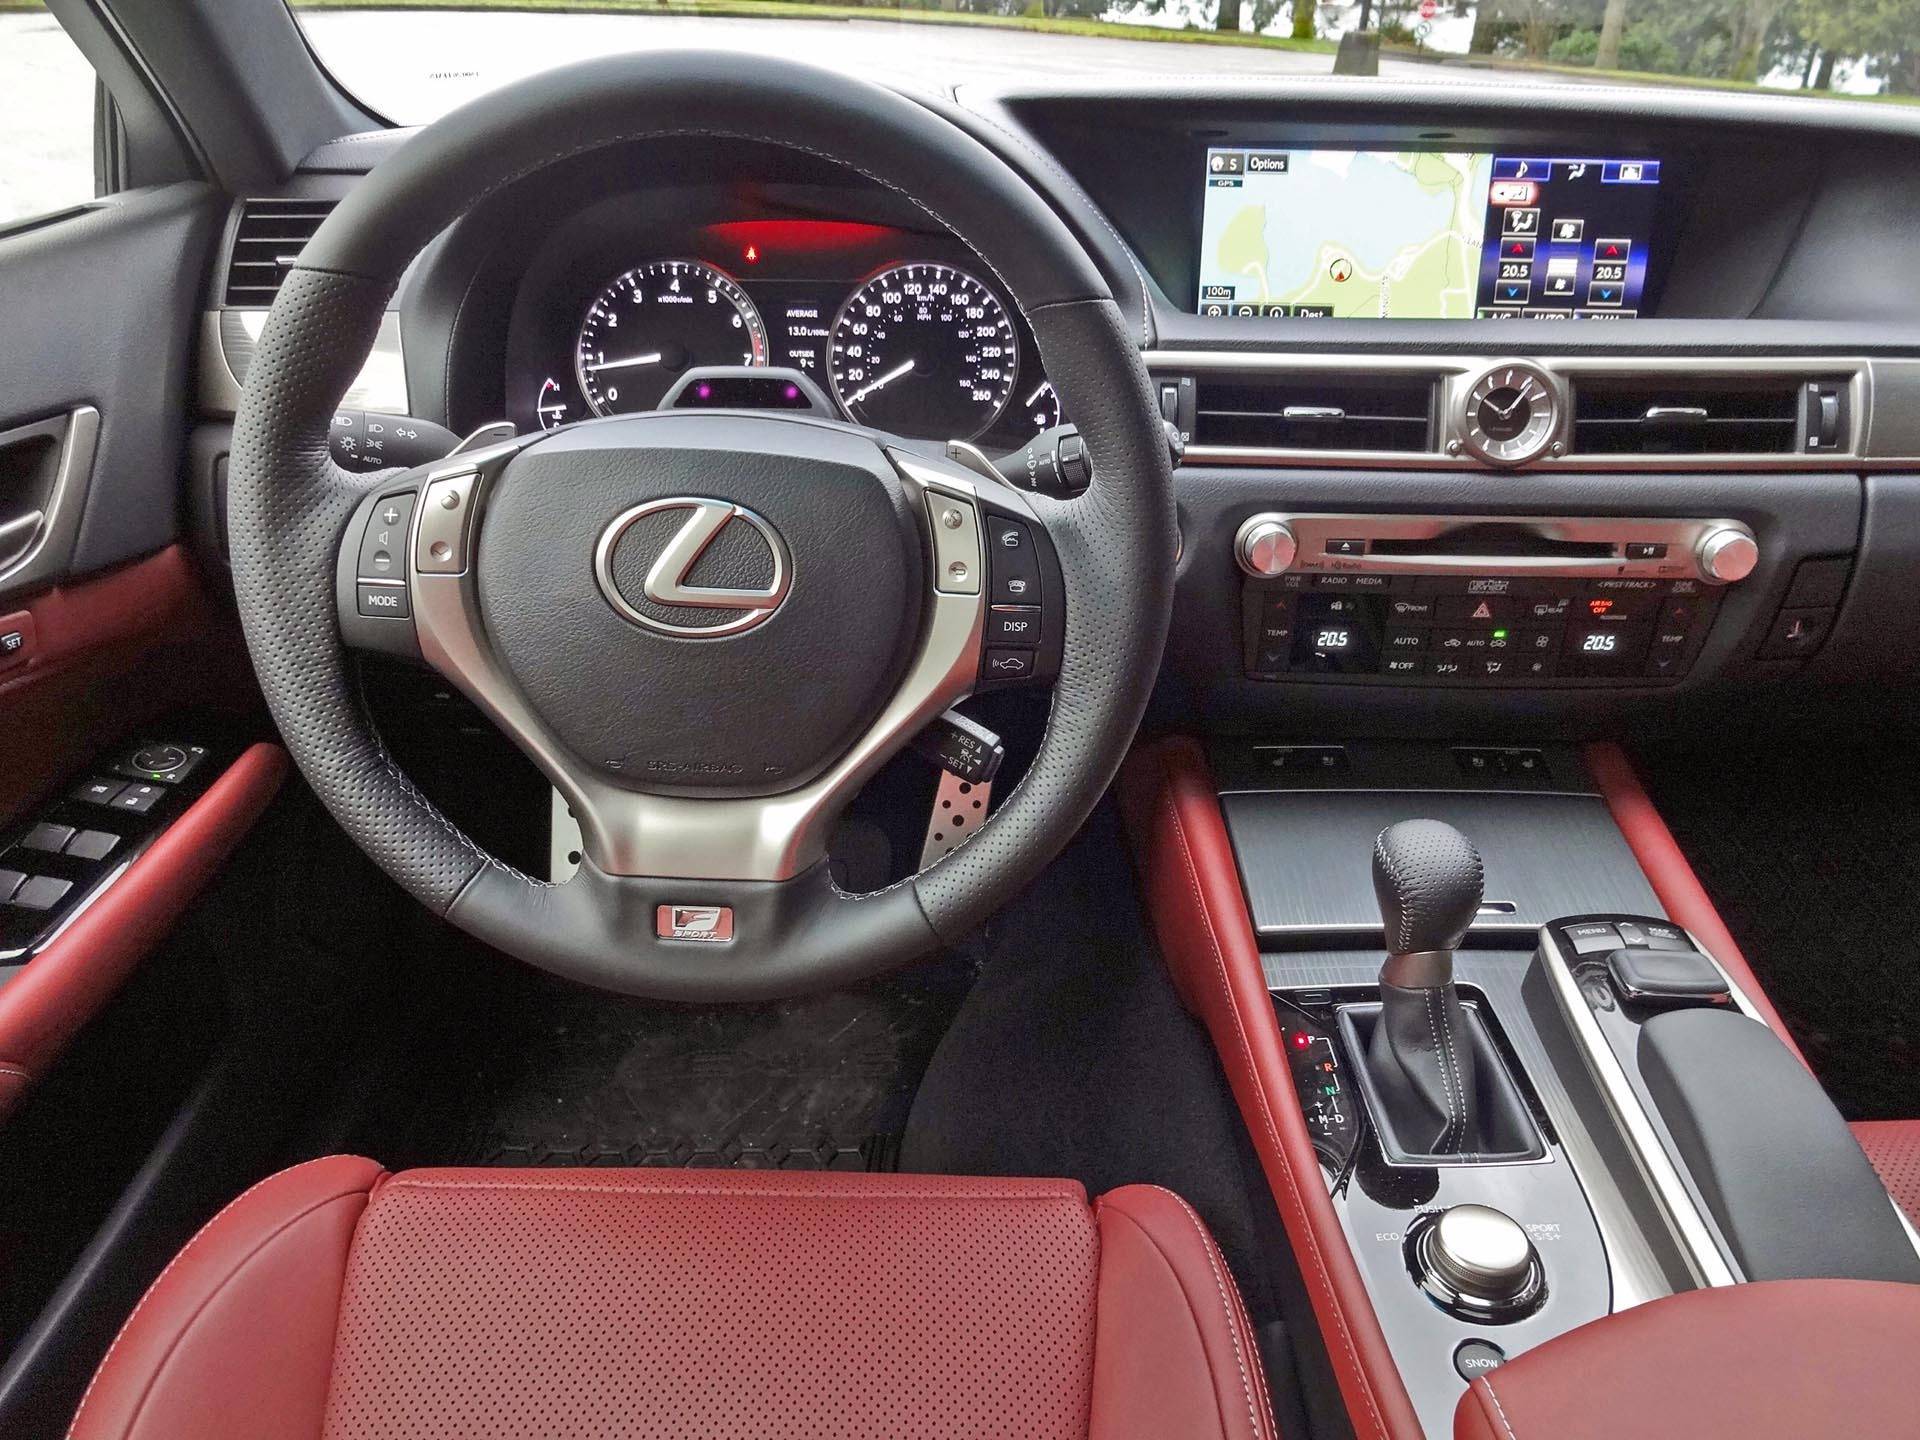 2016 lexus gs 350 f sport car interior design. Black Bedroom Furniture Sets. Home Design Ideas